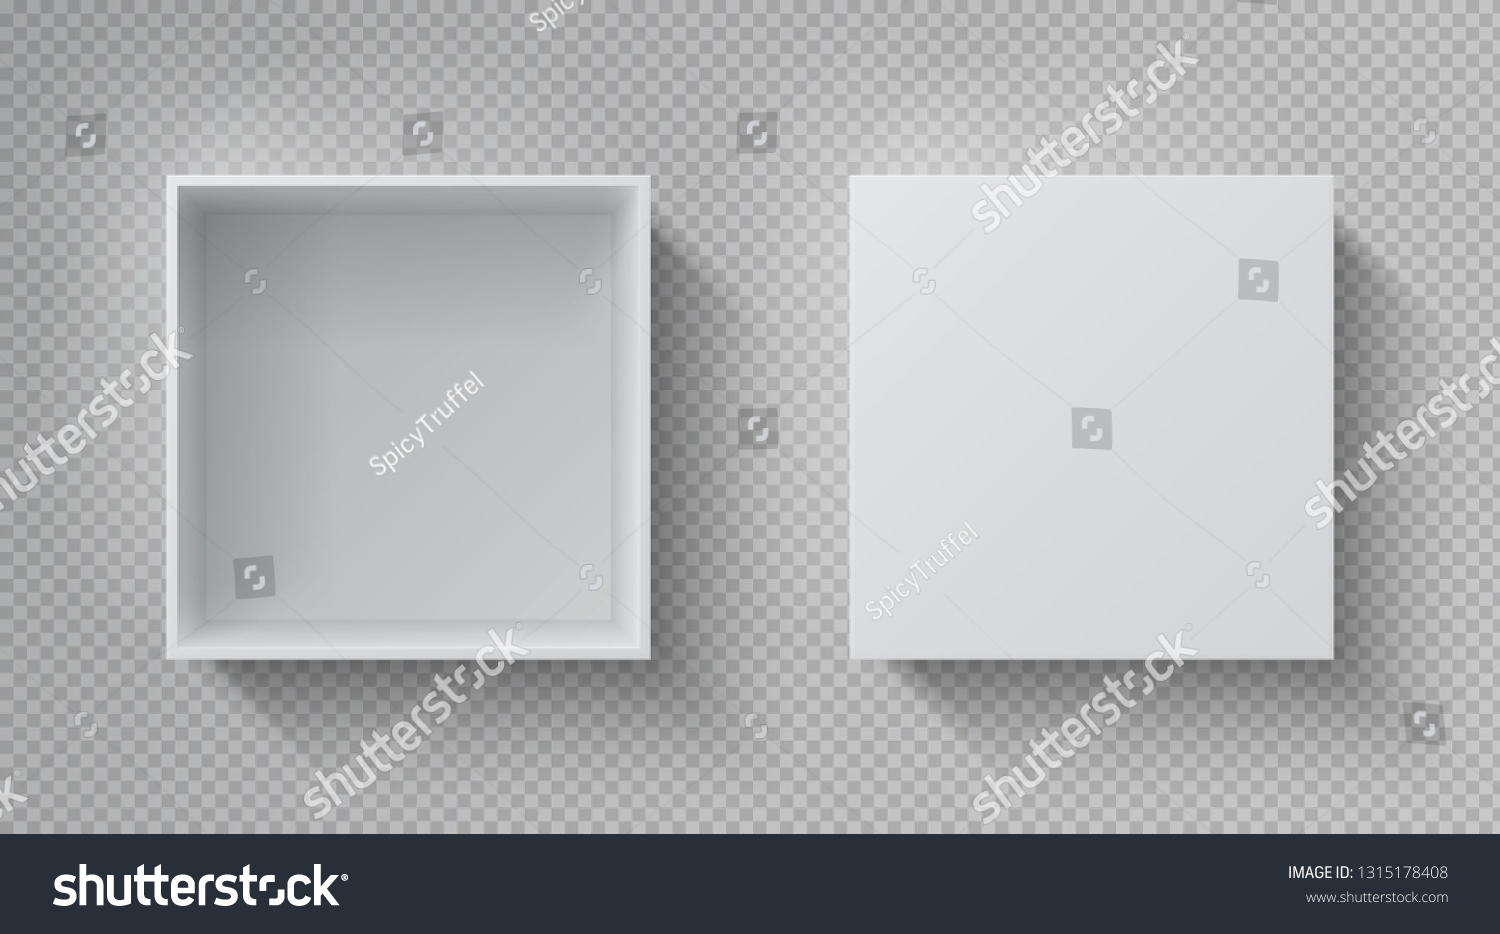 Realistic box top view. Open white package mockup, cardboard closed gift box blank paper pack. Square container vector design template #1315178408